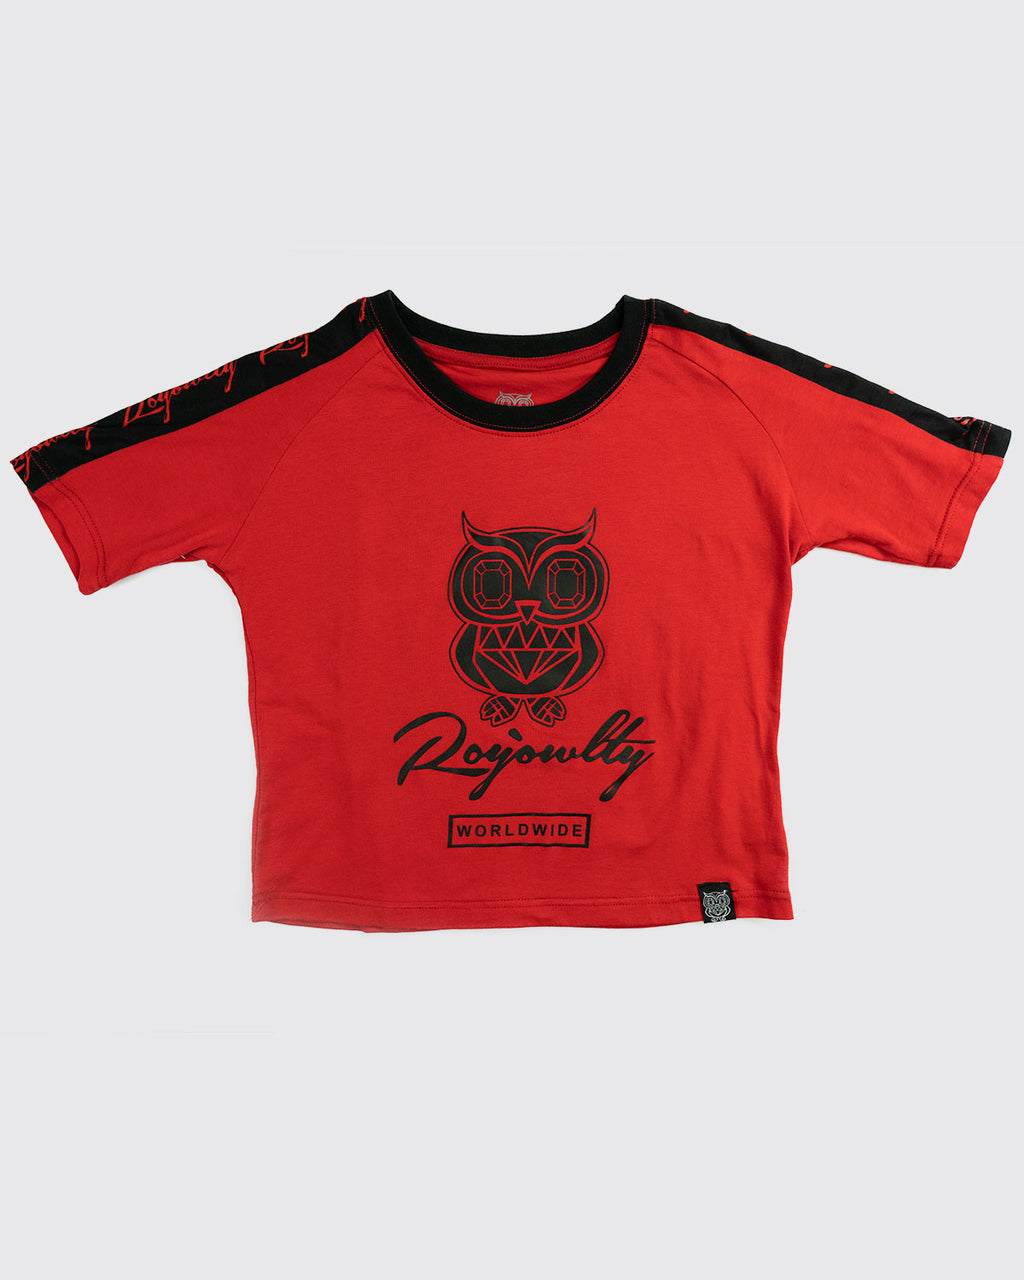 Originals Crop top(short sleeve)- Red